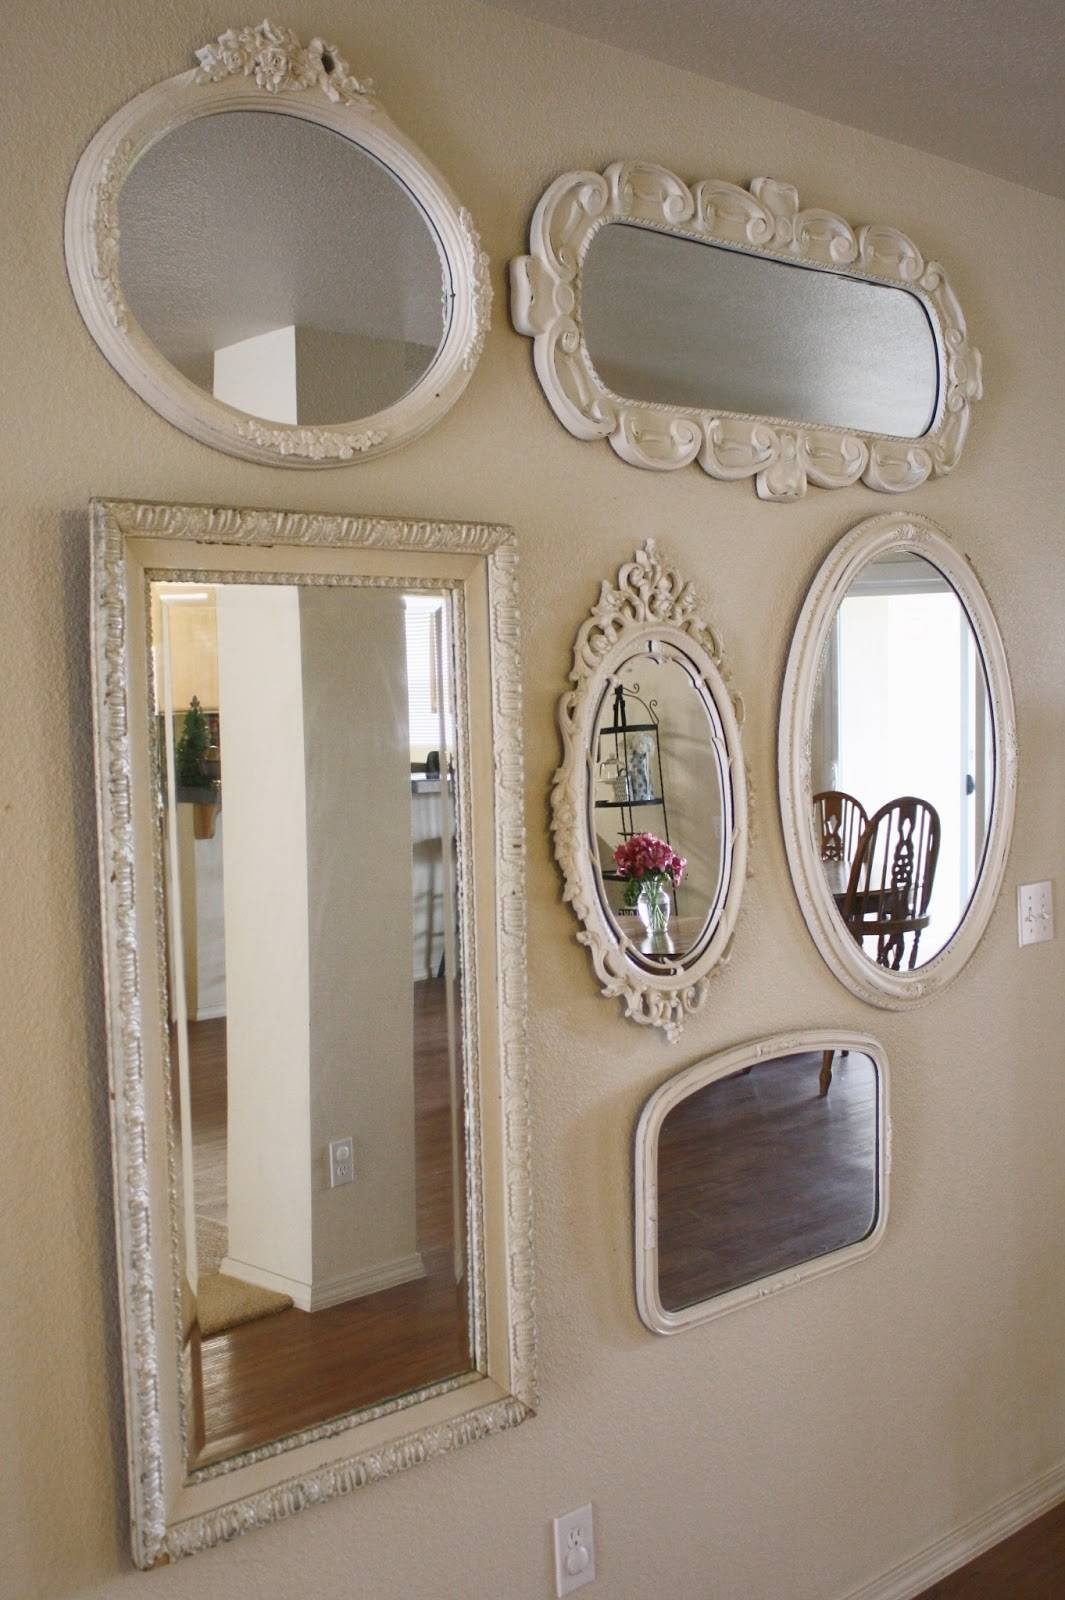 Wall Of Mirrors | Designedbykrystleblog intended for Vintage White Mirrors (Image 22 of 25)